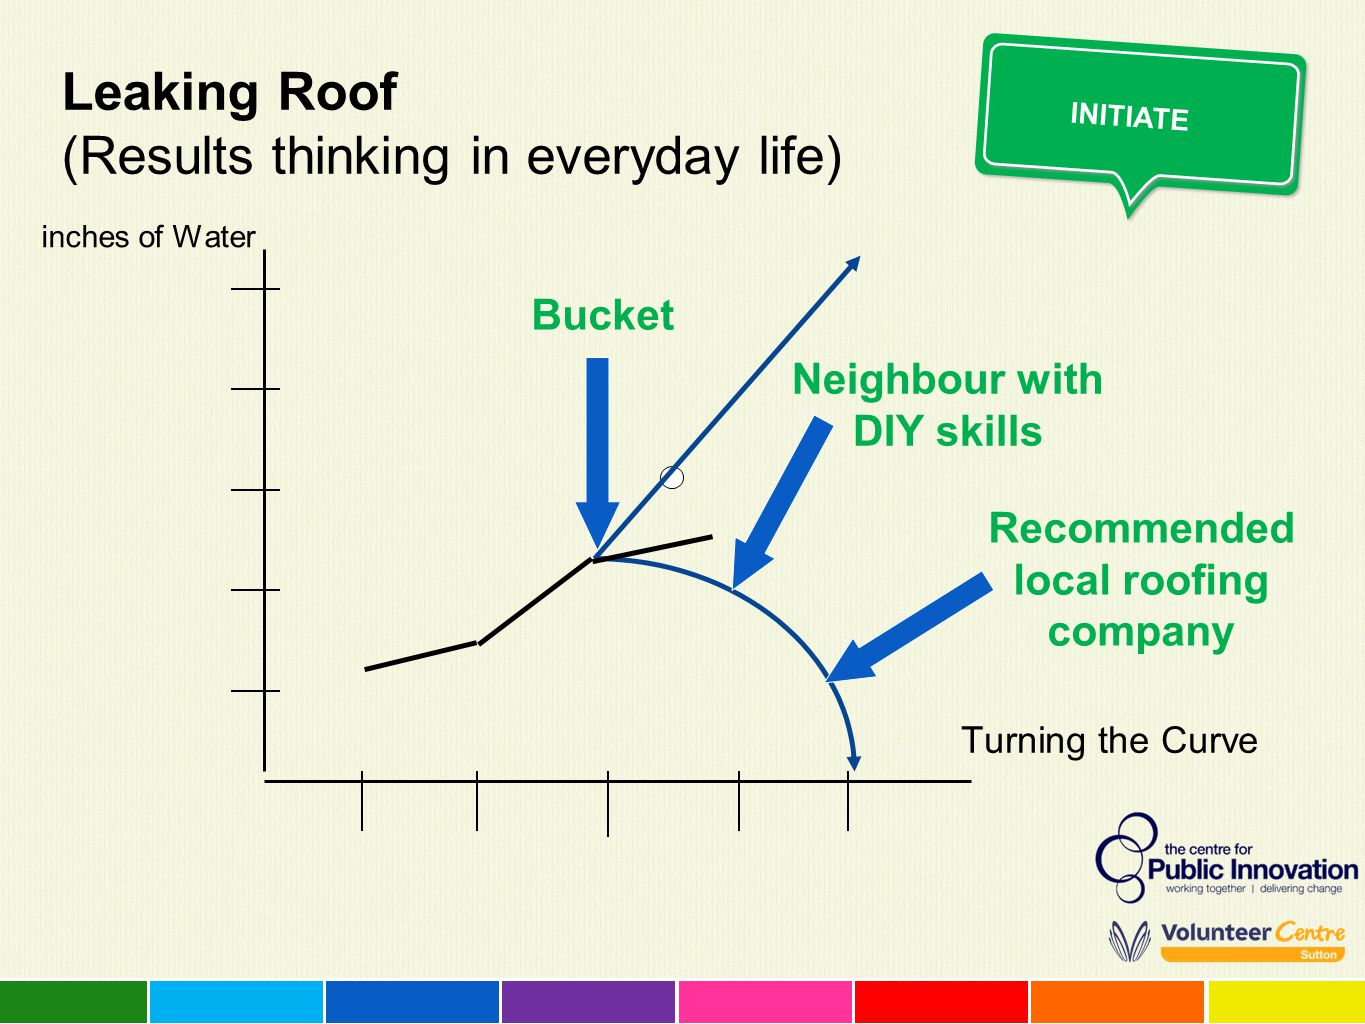 Leaking Roof (Results thinking in everyday life) inches of Water Turning the Curve INITIATE Bucket Neighbour with DIY skills Recommended local roofing